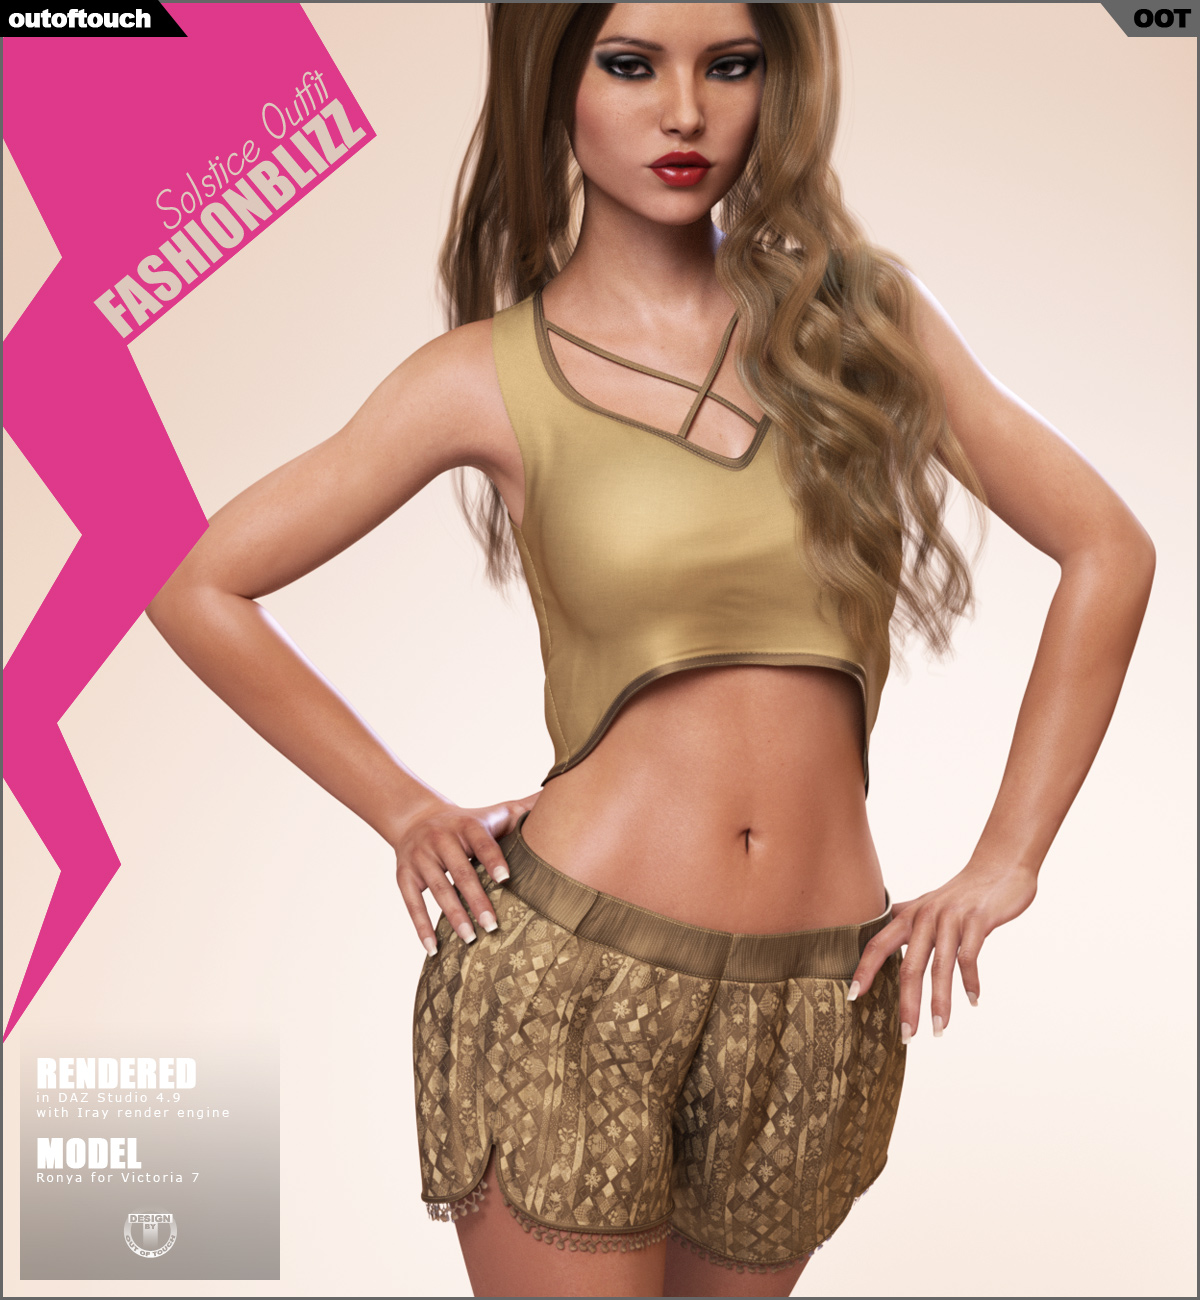 Fashion Blizz: Solstice Outfit for Genesis 3 Female(s) by outoftouch